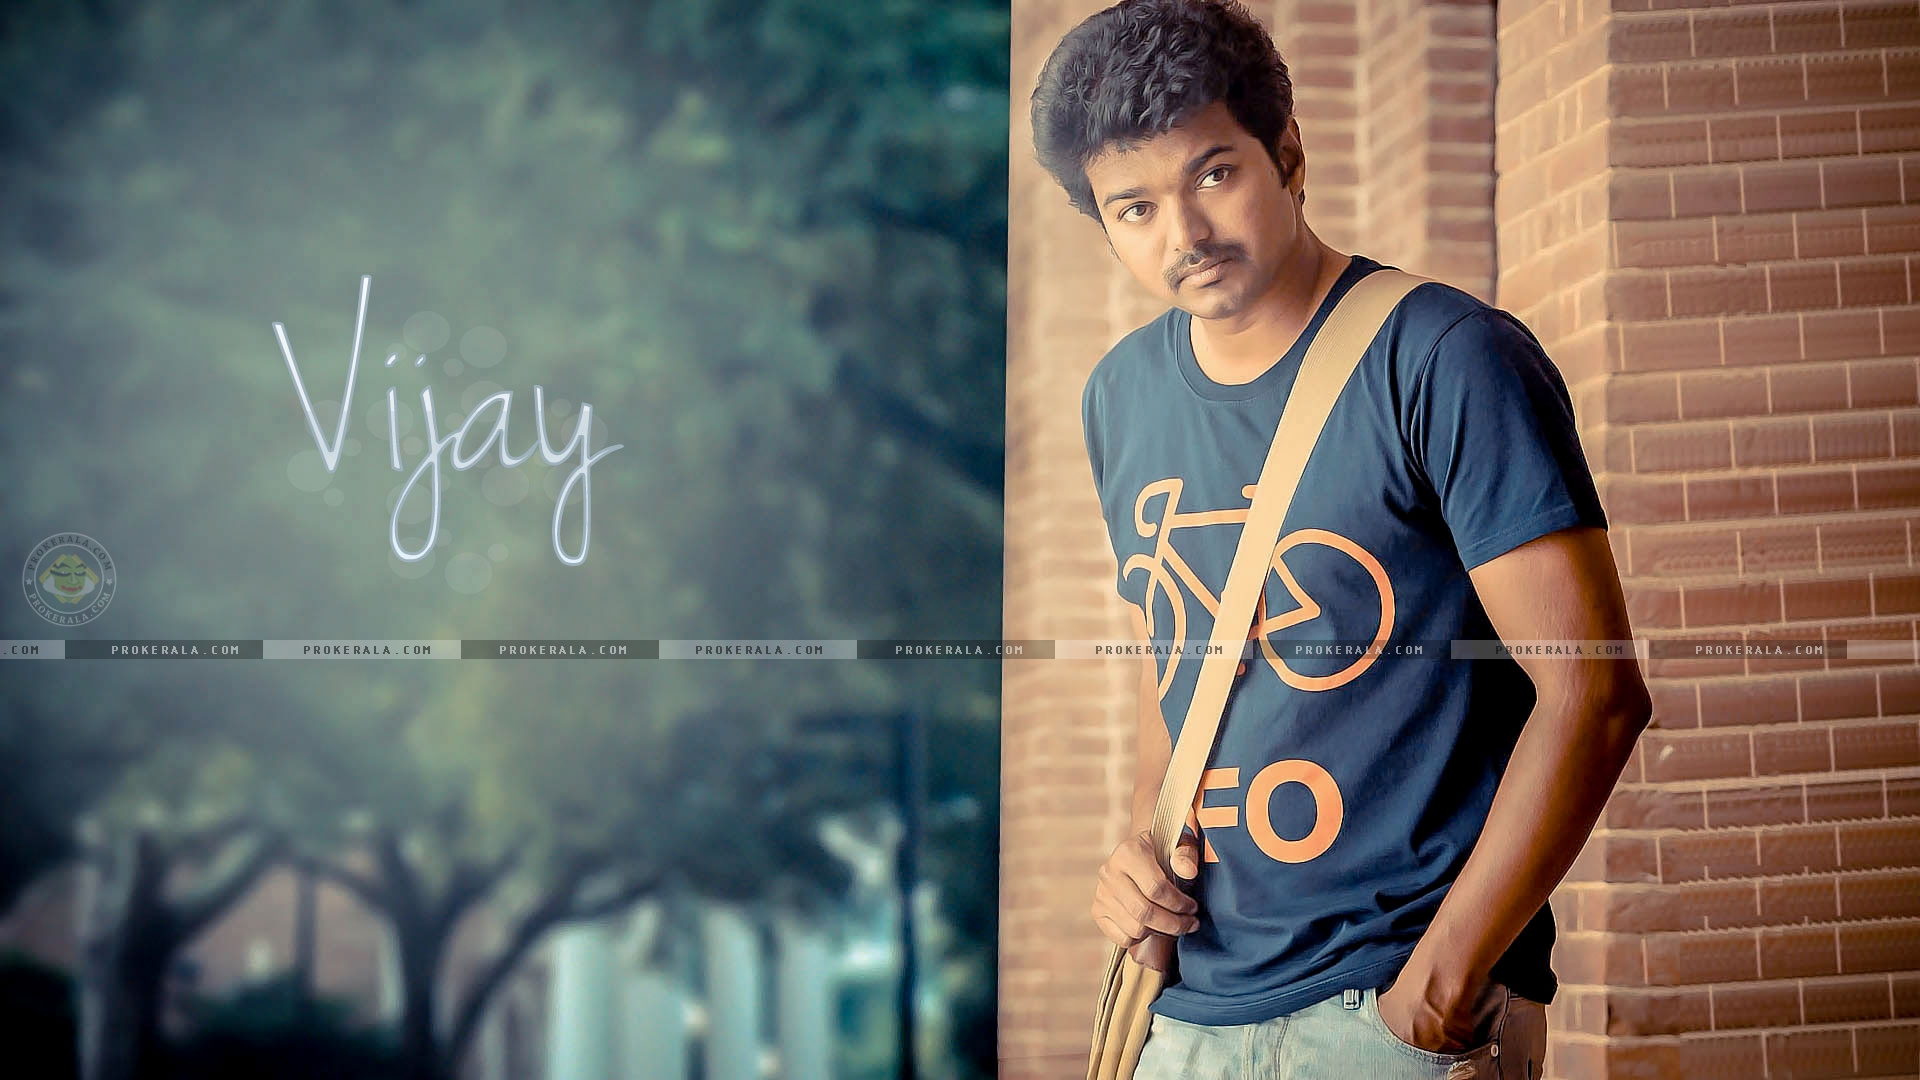 Vijay Love Hd Wallpaper : Vijay Wallpaper